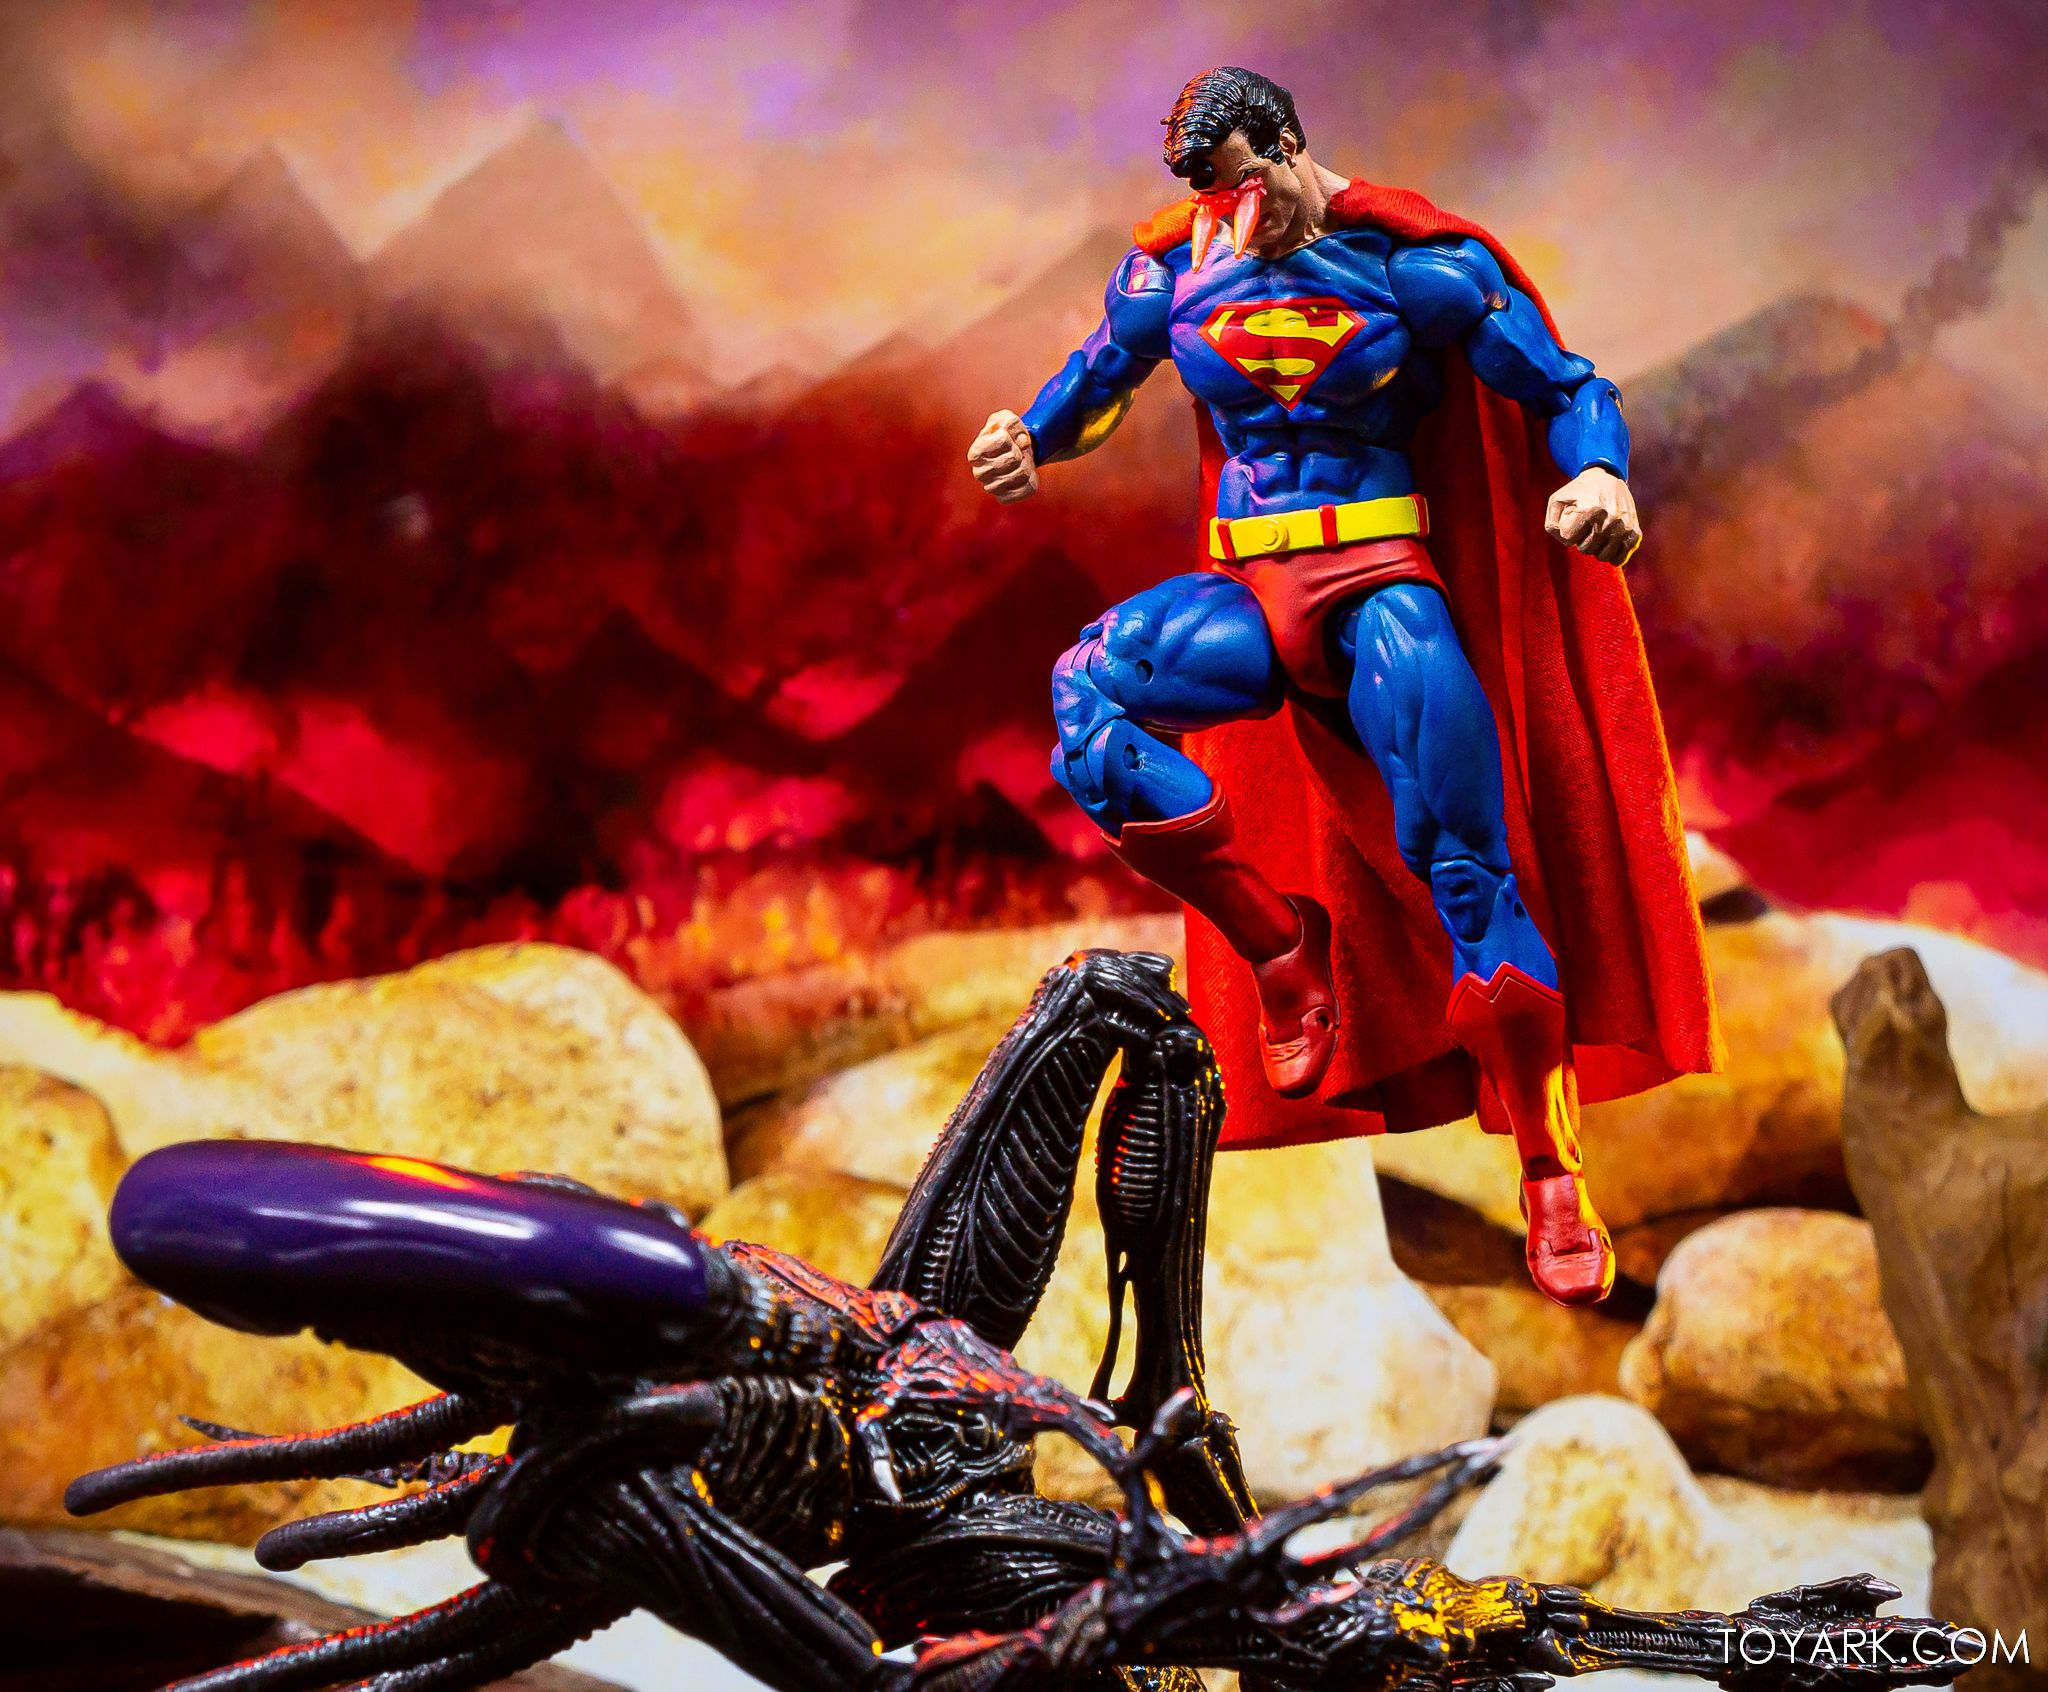 https://news.toyark.com/wp-content/uploads/sites/4/2019/09/Superman-vs-Alien-Set-053.jpg